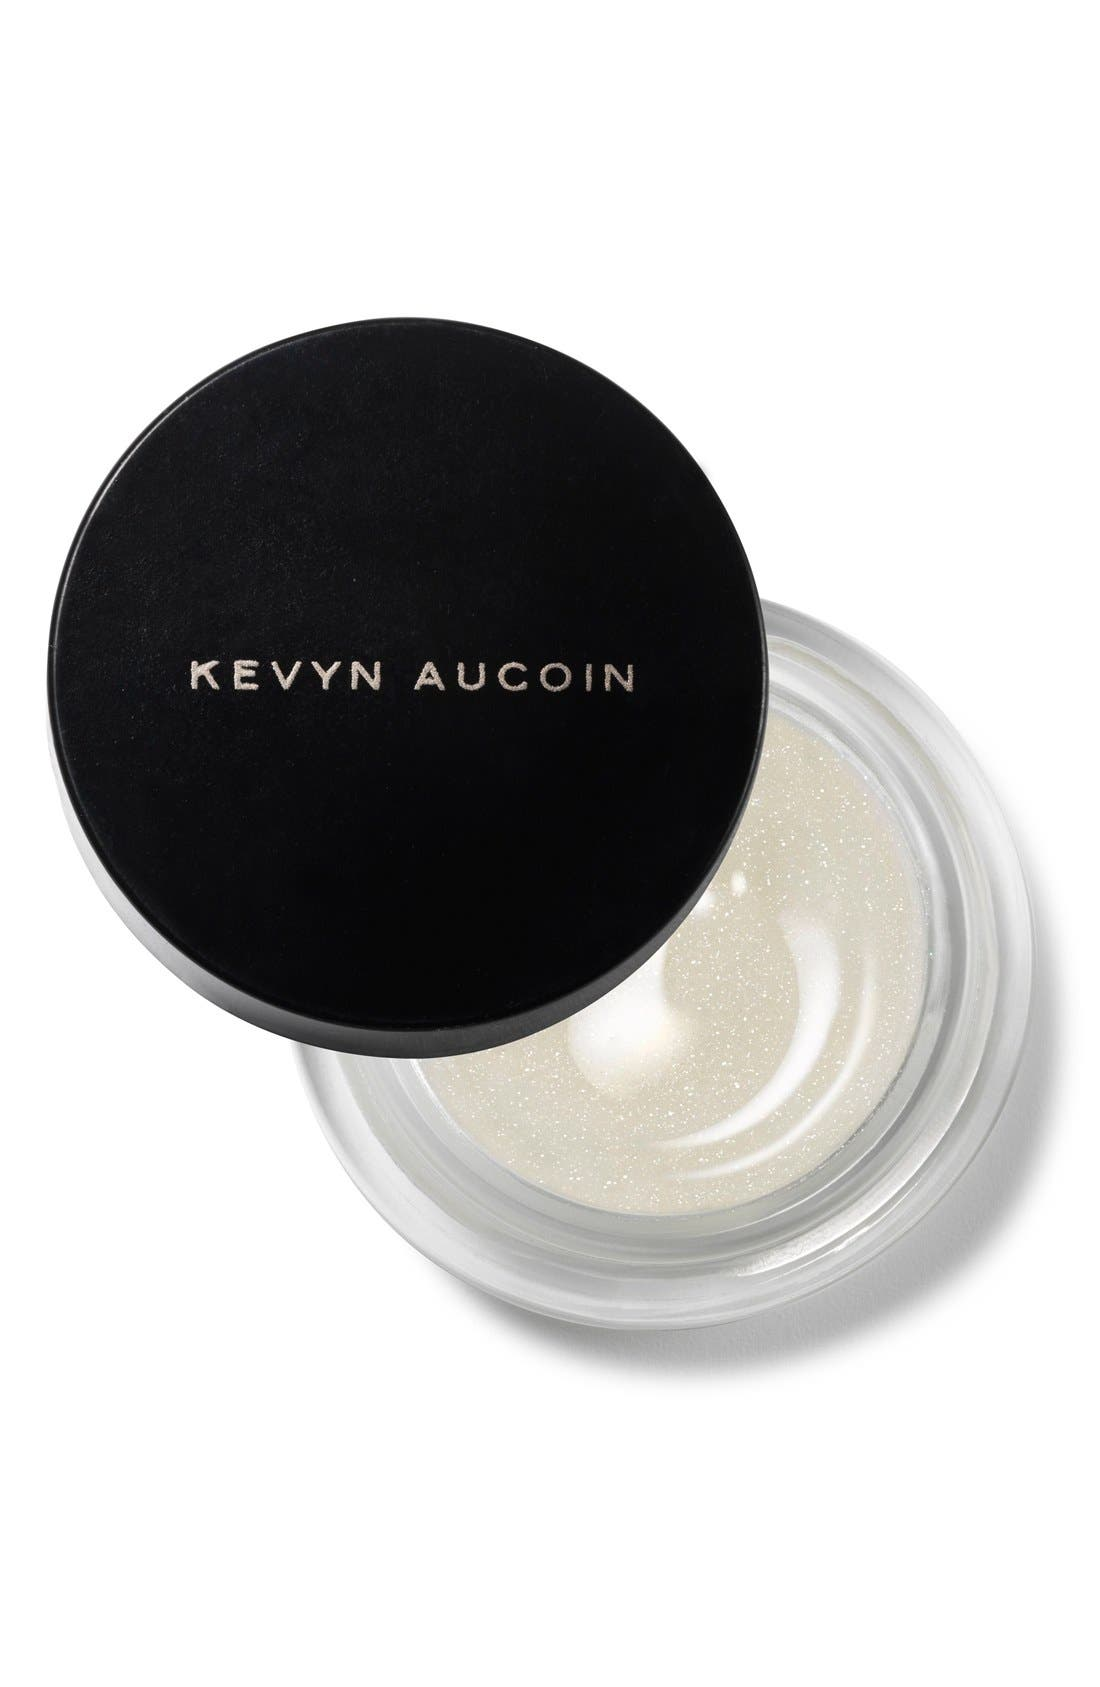 SPACE.NK.apothecary Kevyn Aucoin Beauty The Exotique Diamond Eye Gloss